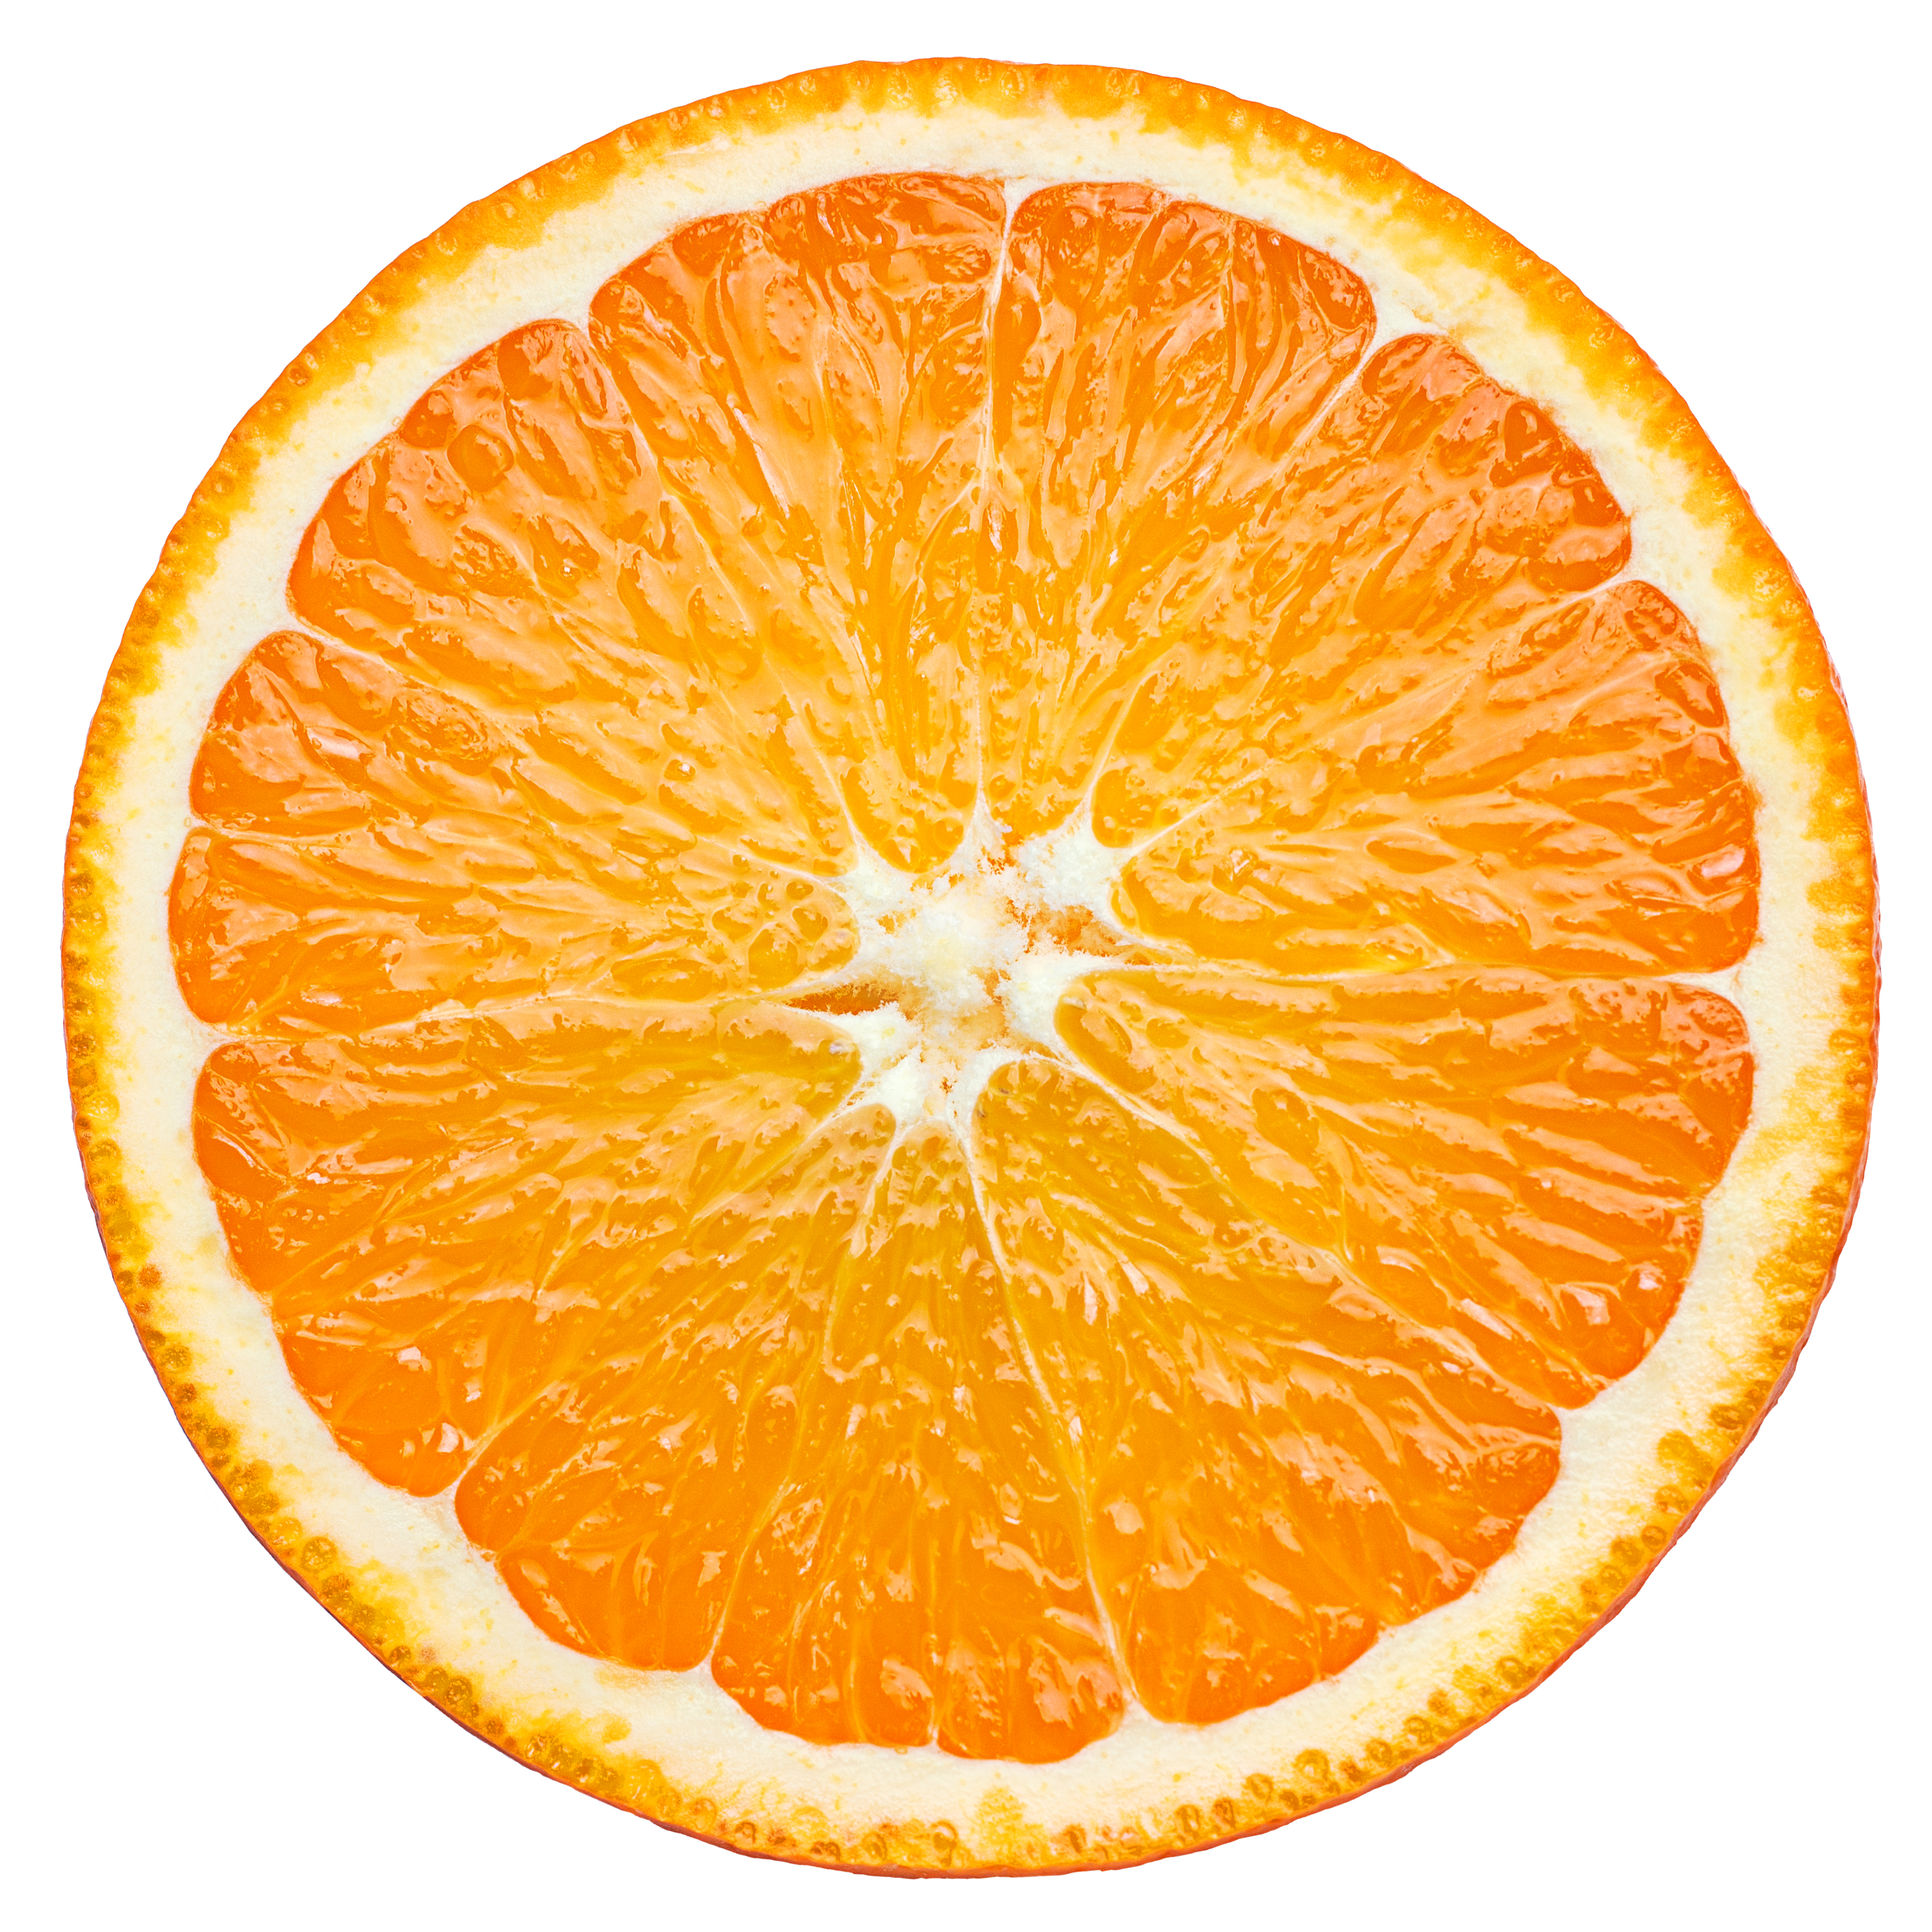 orange slice, clipping path, isolated on